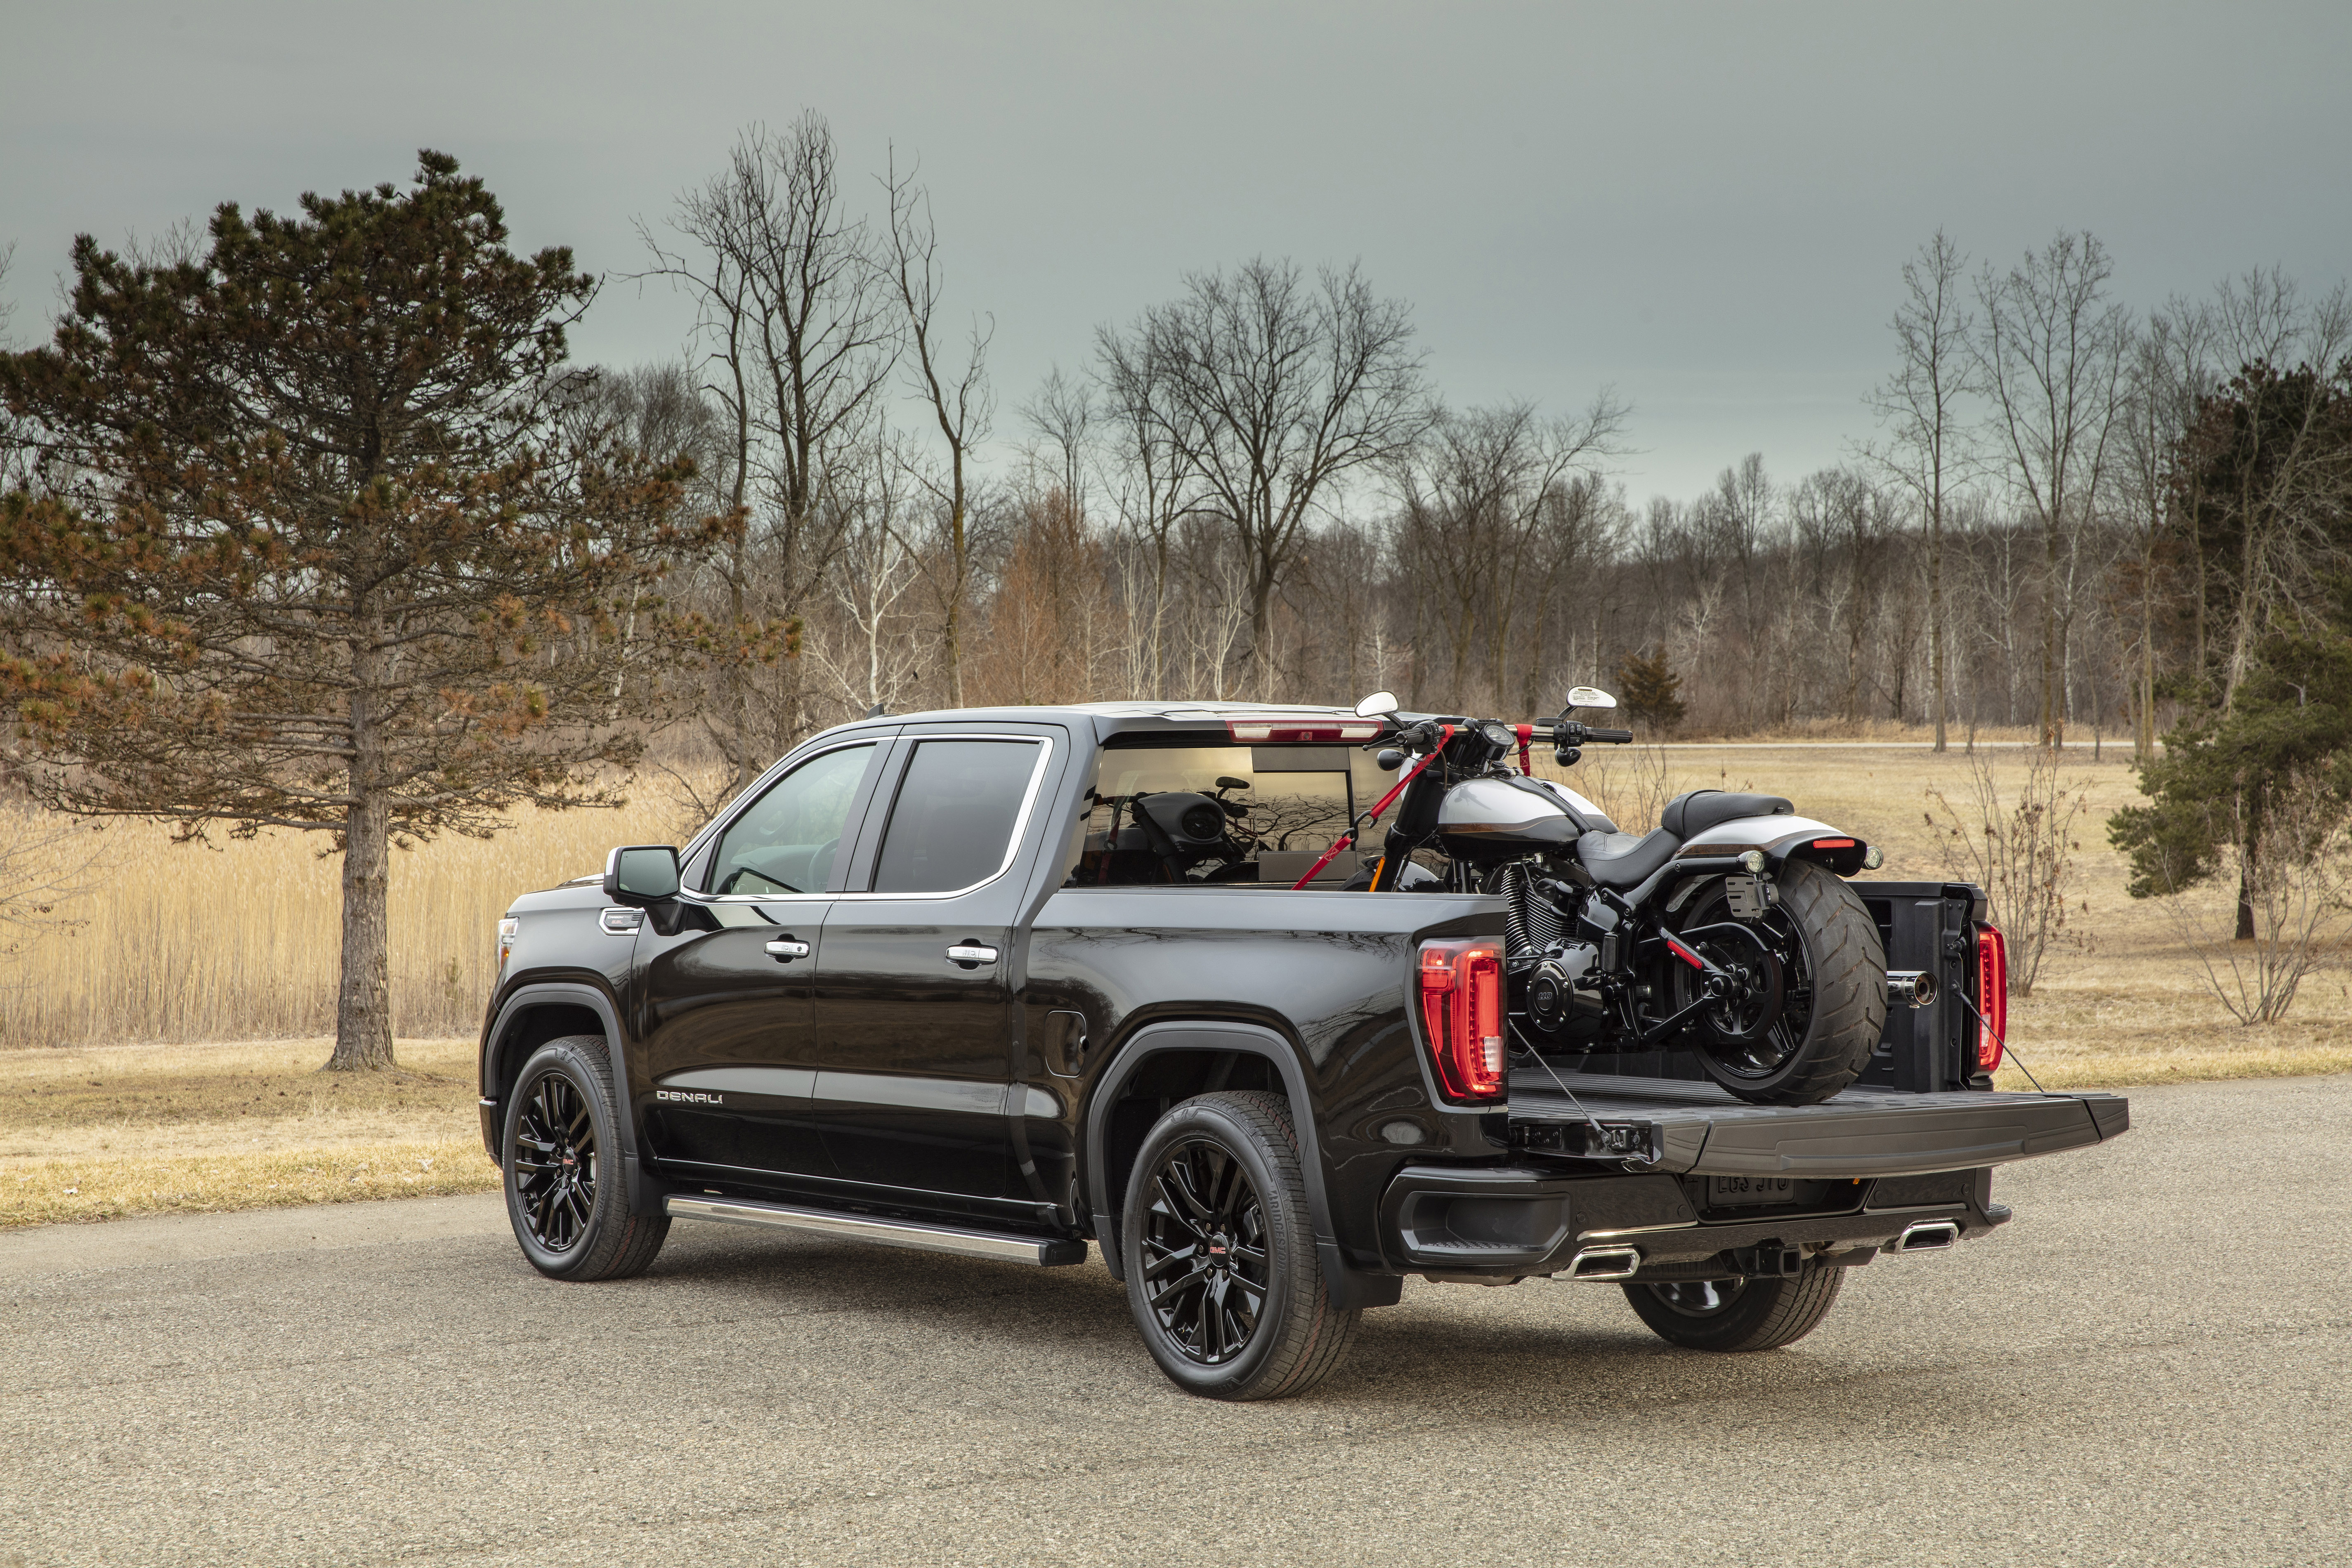 Gmc Innovation Continues With 2020 Sierra 1500 2020 Gmc Sierra 2500Hd All Terrain, Accessories, Changes